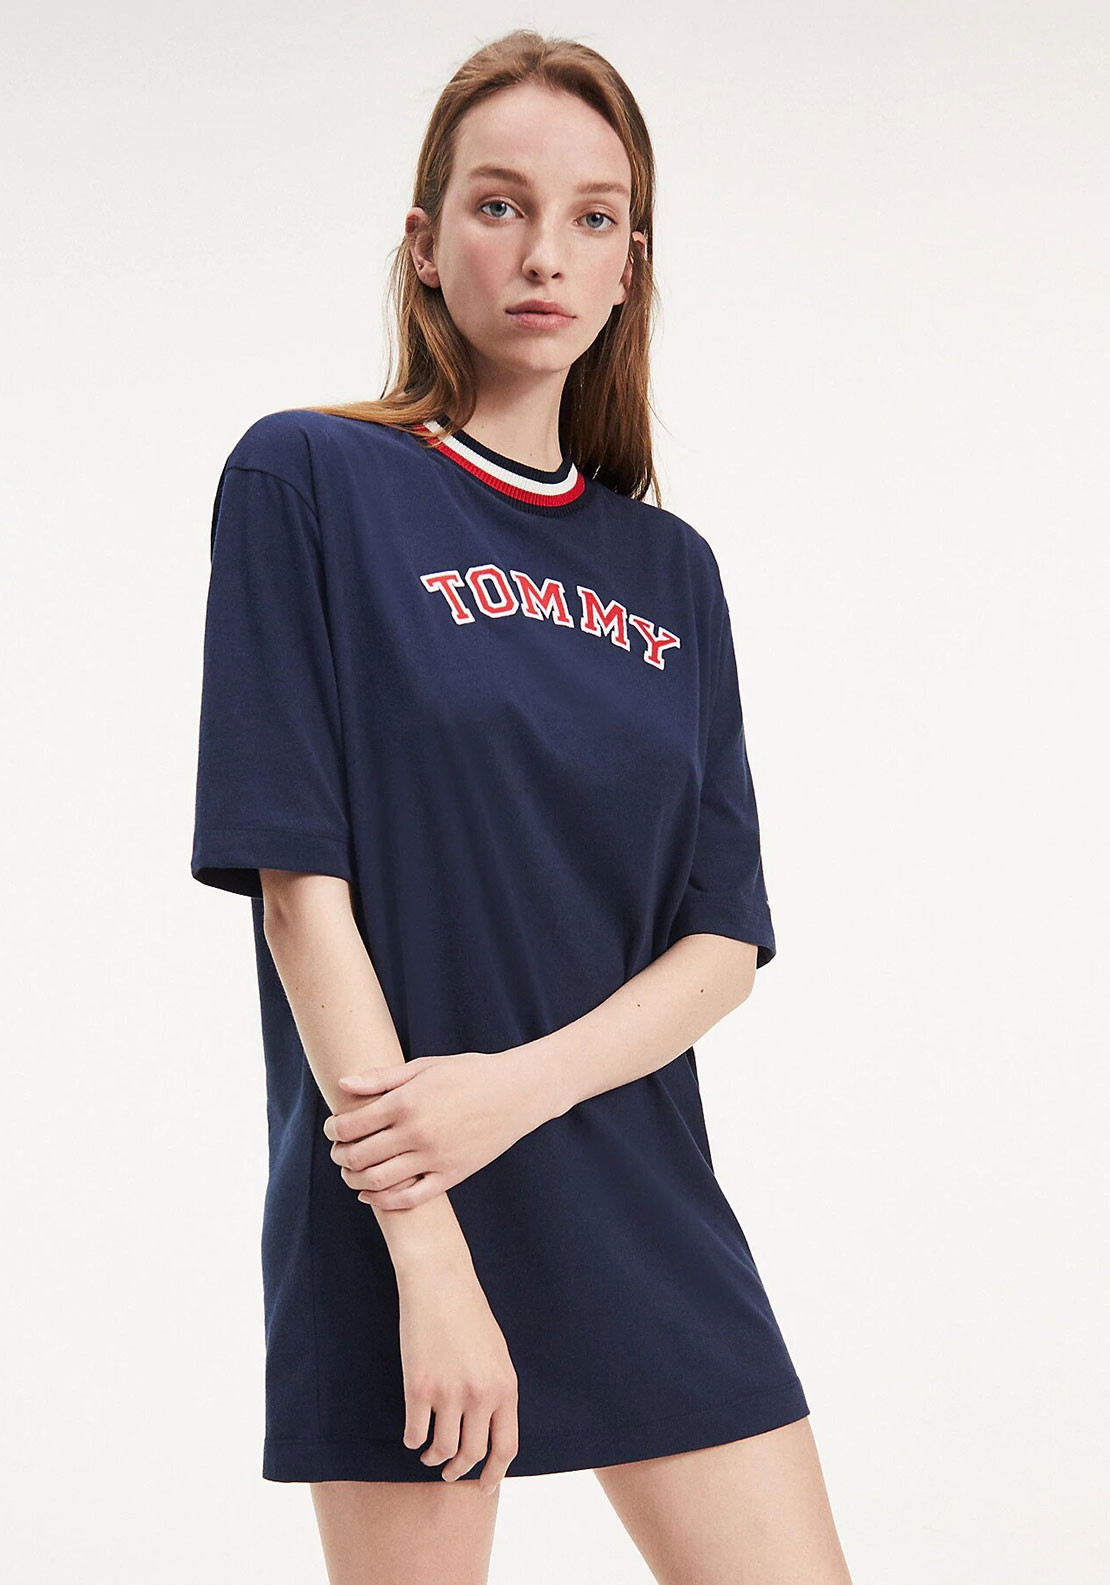 Tommy Hilfiger Womens Recycled Cotton Nightdress, Navy